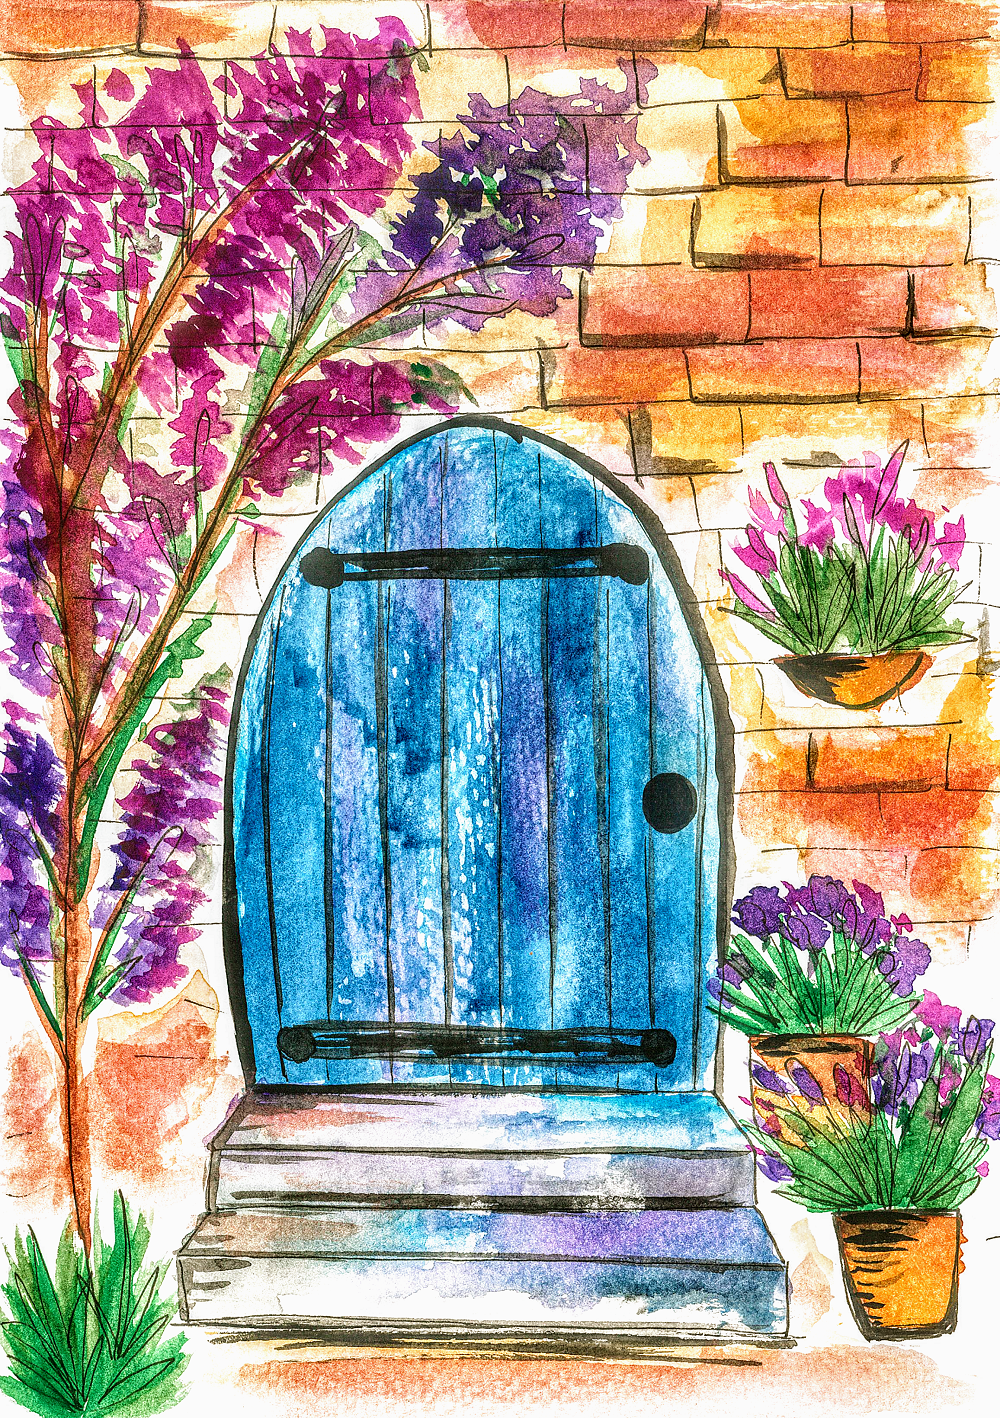 watercolour doors - image 2 - student project